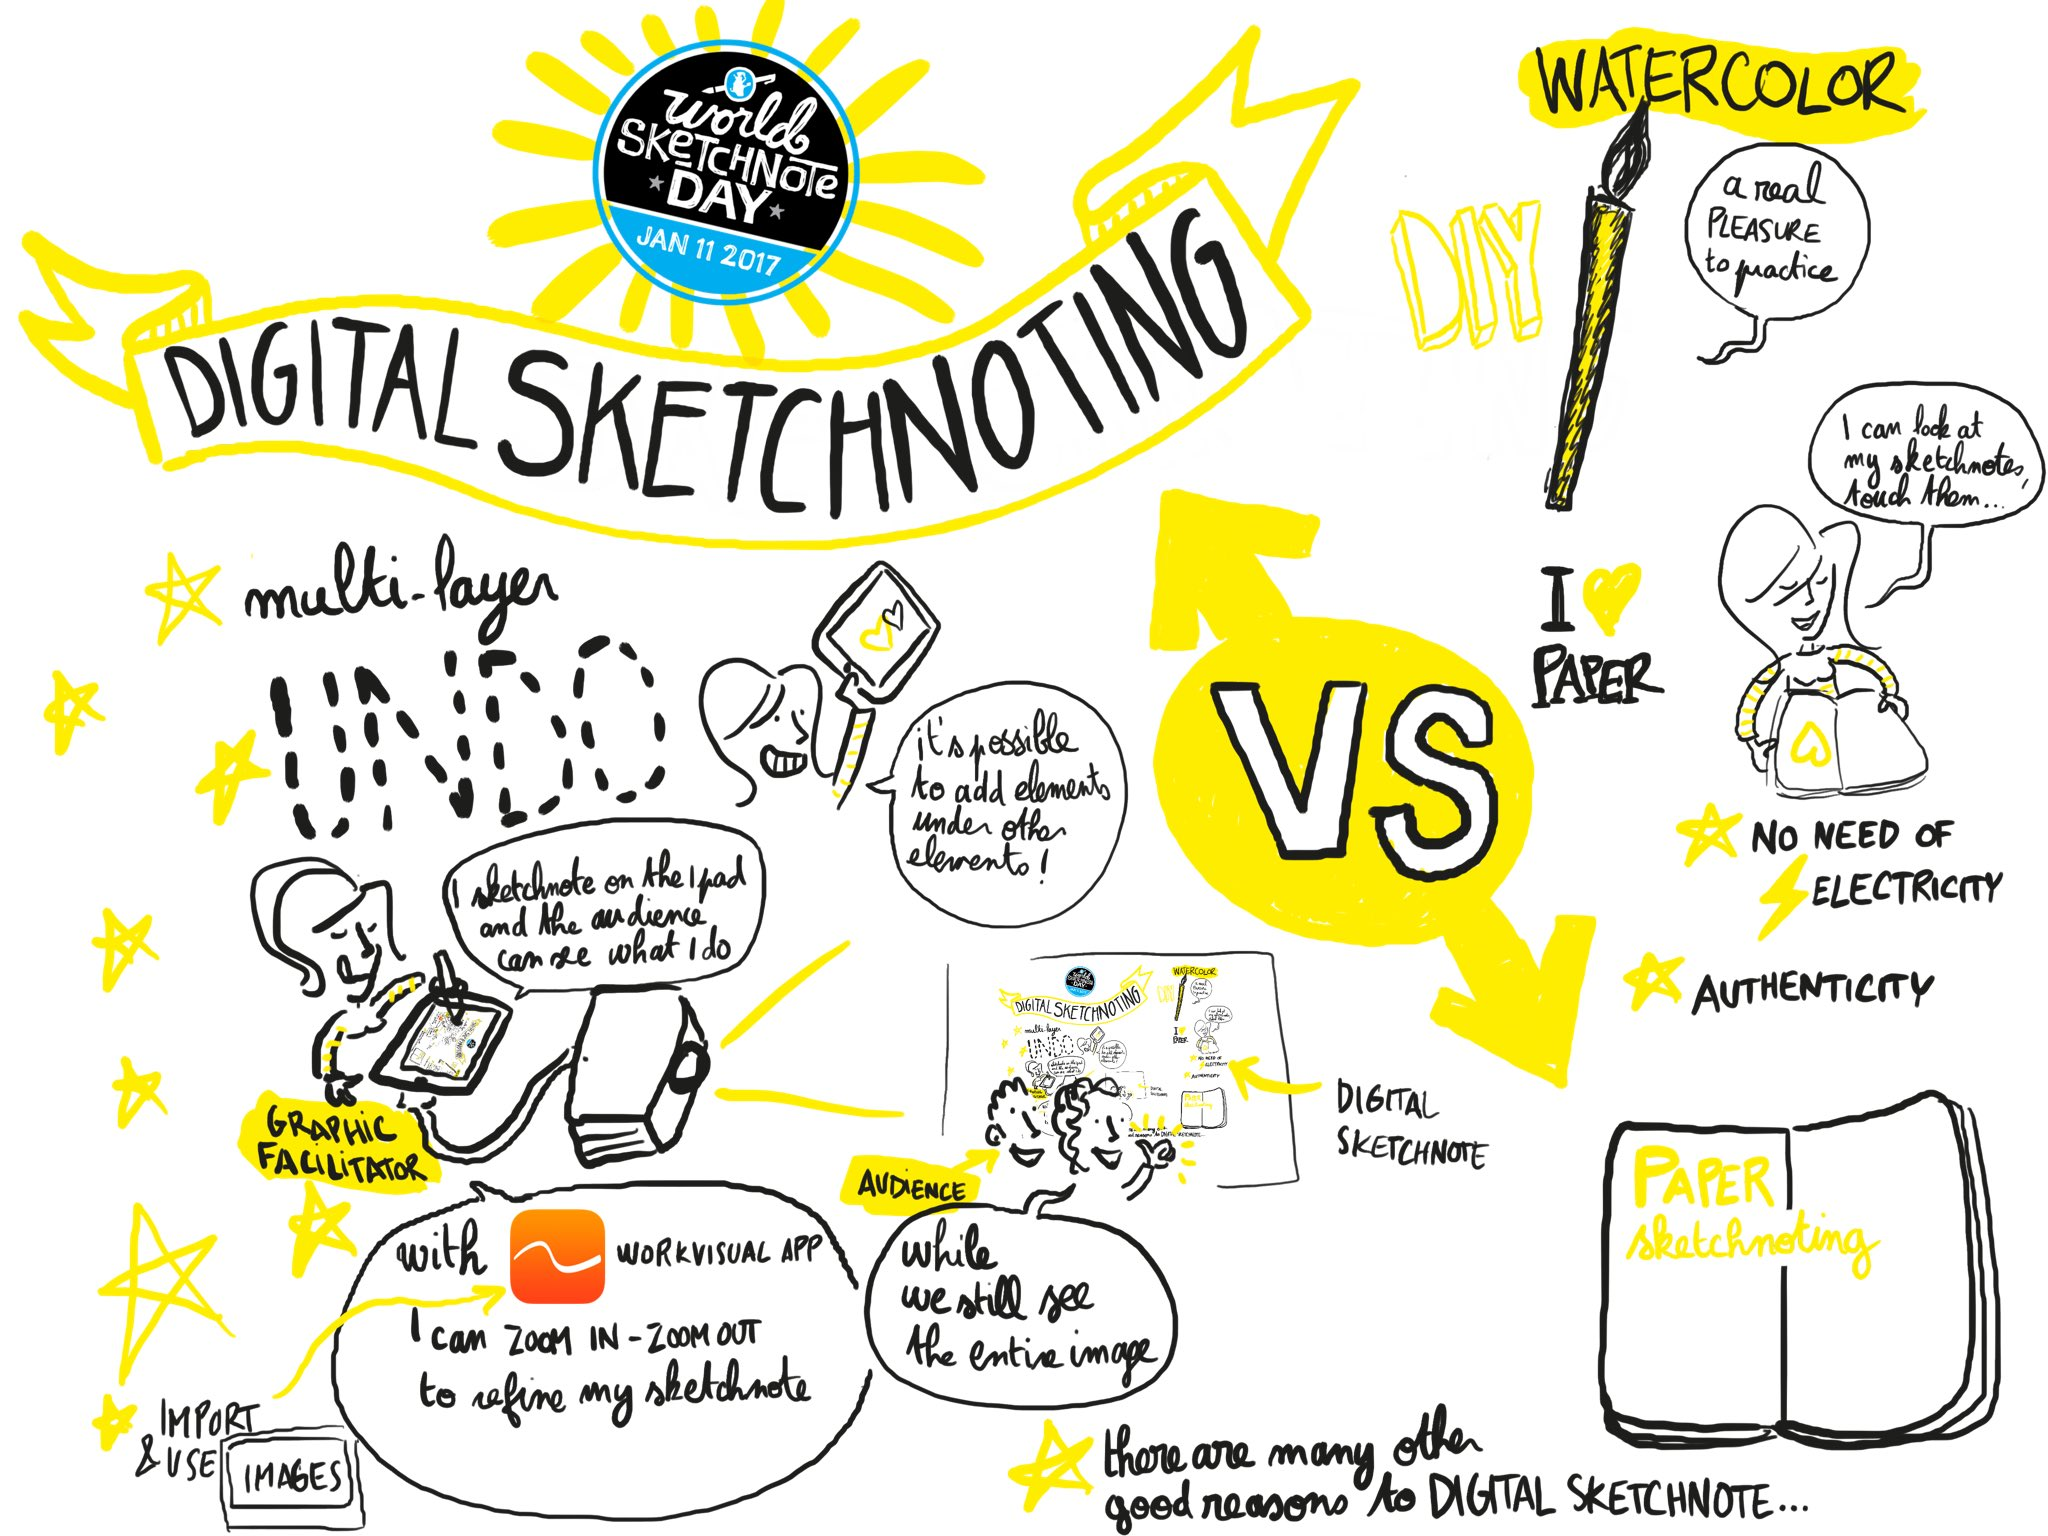 Experiencing #digital #sketchnote @WorkVisualApp for their challenge ✏👍🏻 #SNDay2017 @HolgerNilsPohl @SketchnoteArmy @xLontrax #happyscribing https://t.co/OAhlFSkiMh